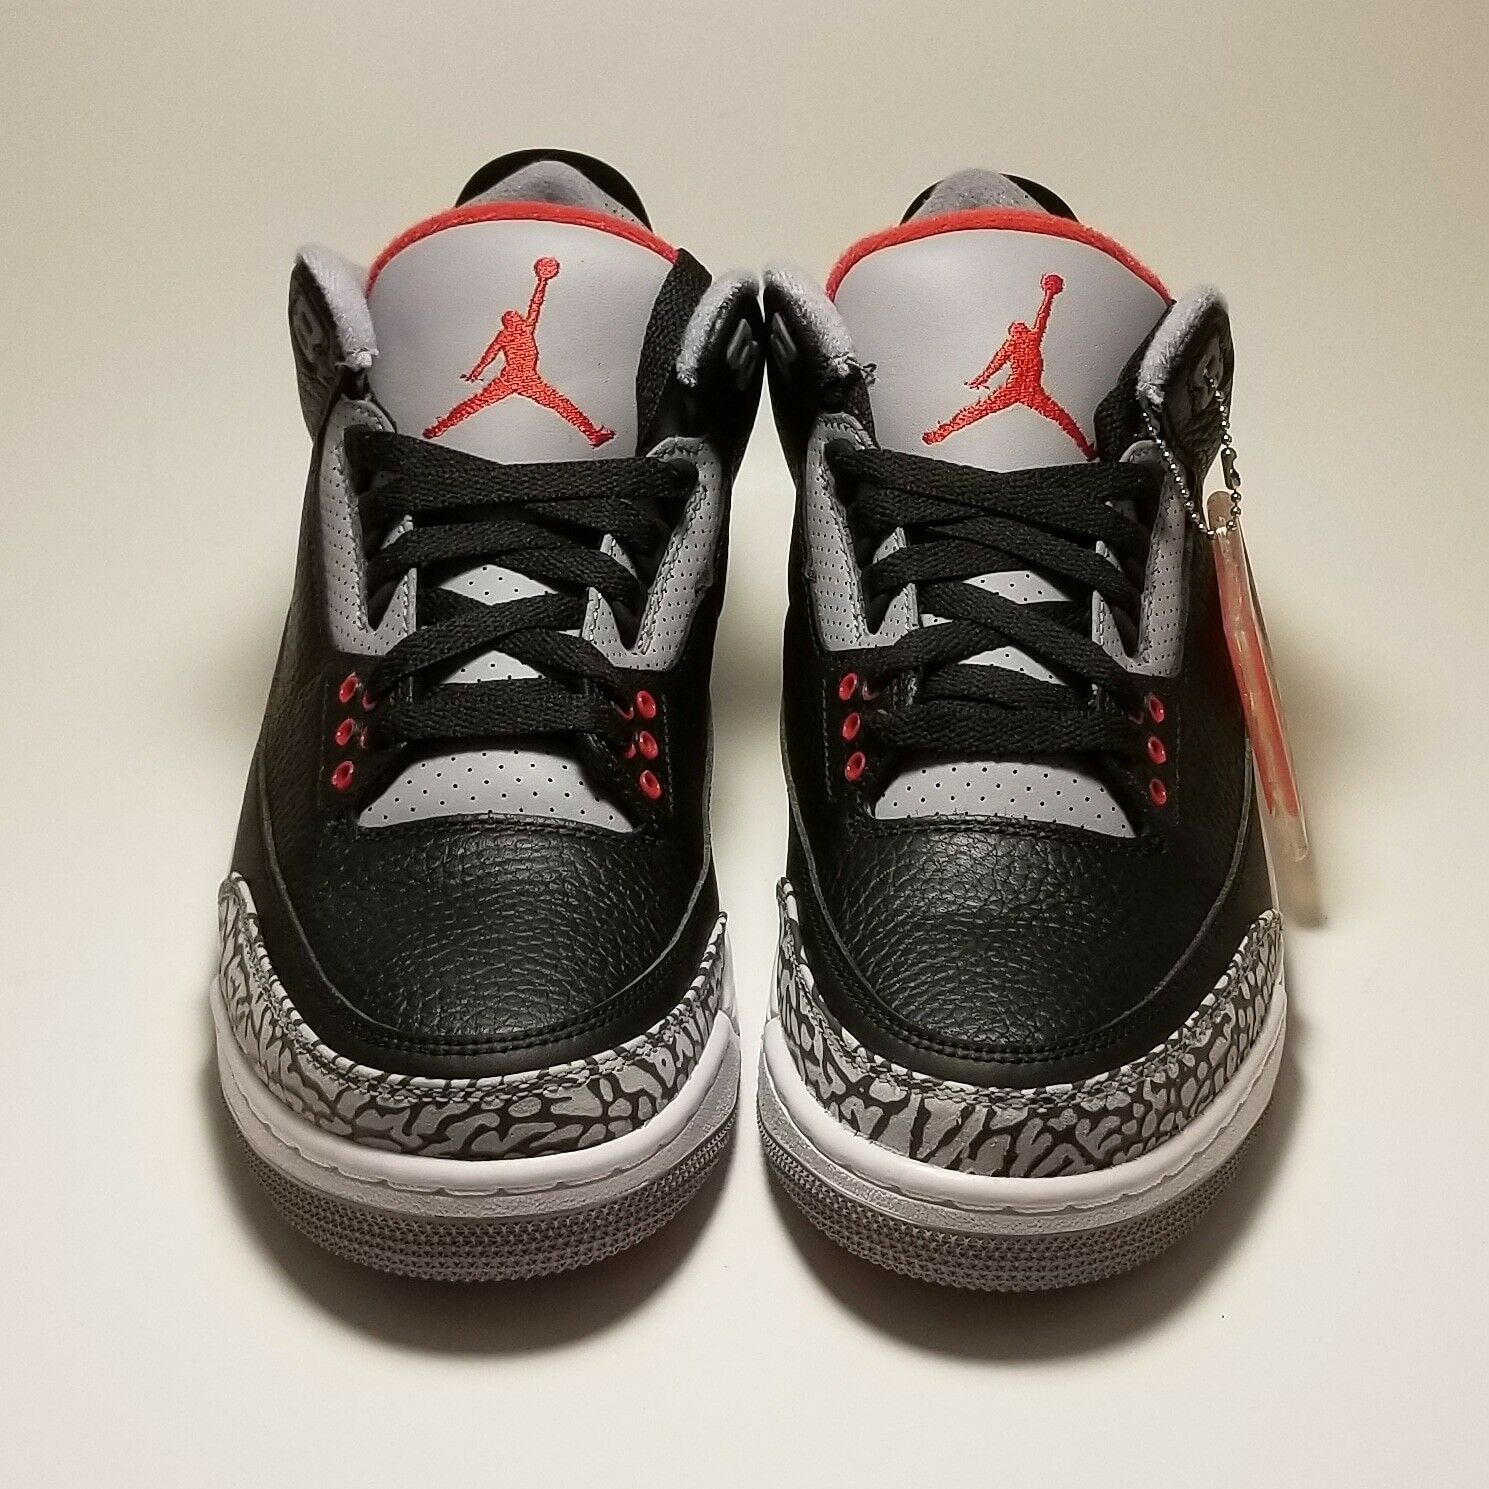 2018 Air Jordan Retro 3 Og 8,5.Limited Negro Cement hombres tamaño 8,5.Limited Og 1f513a